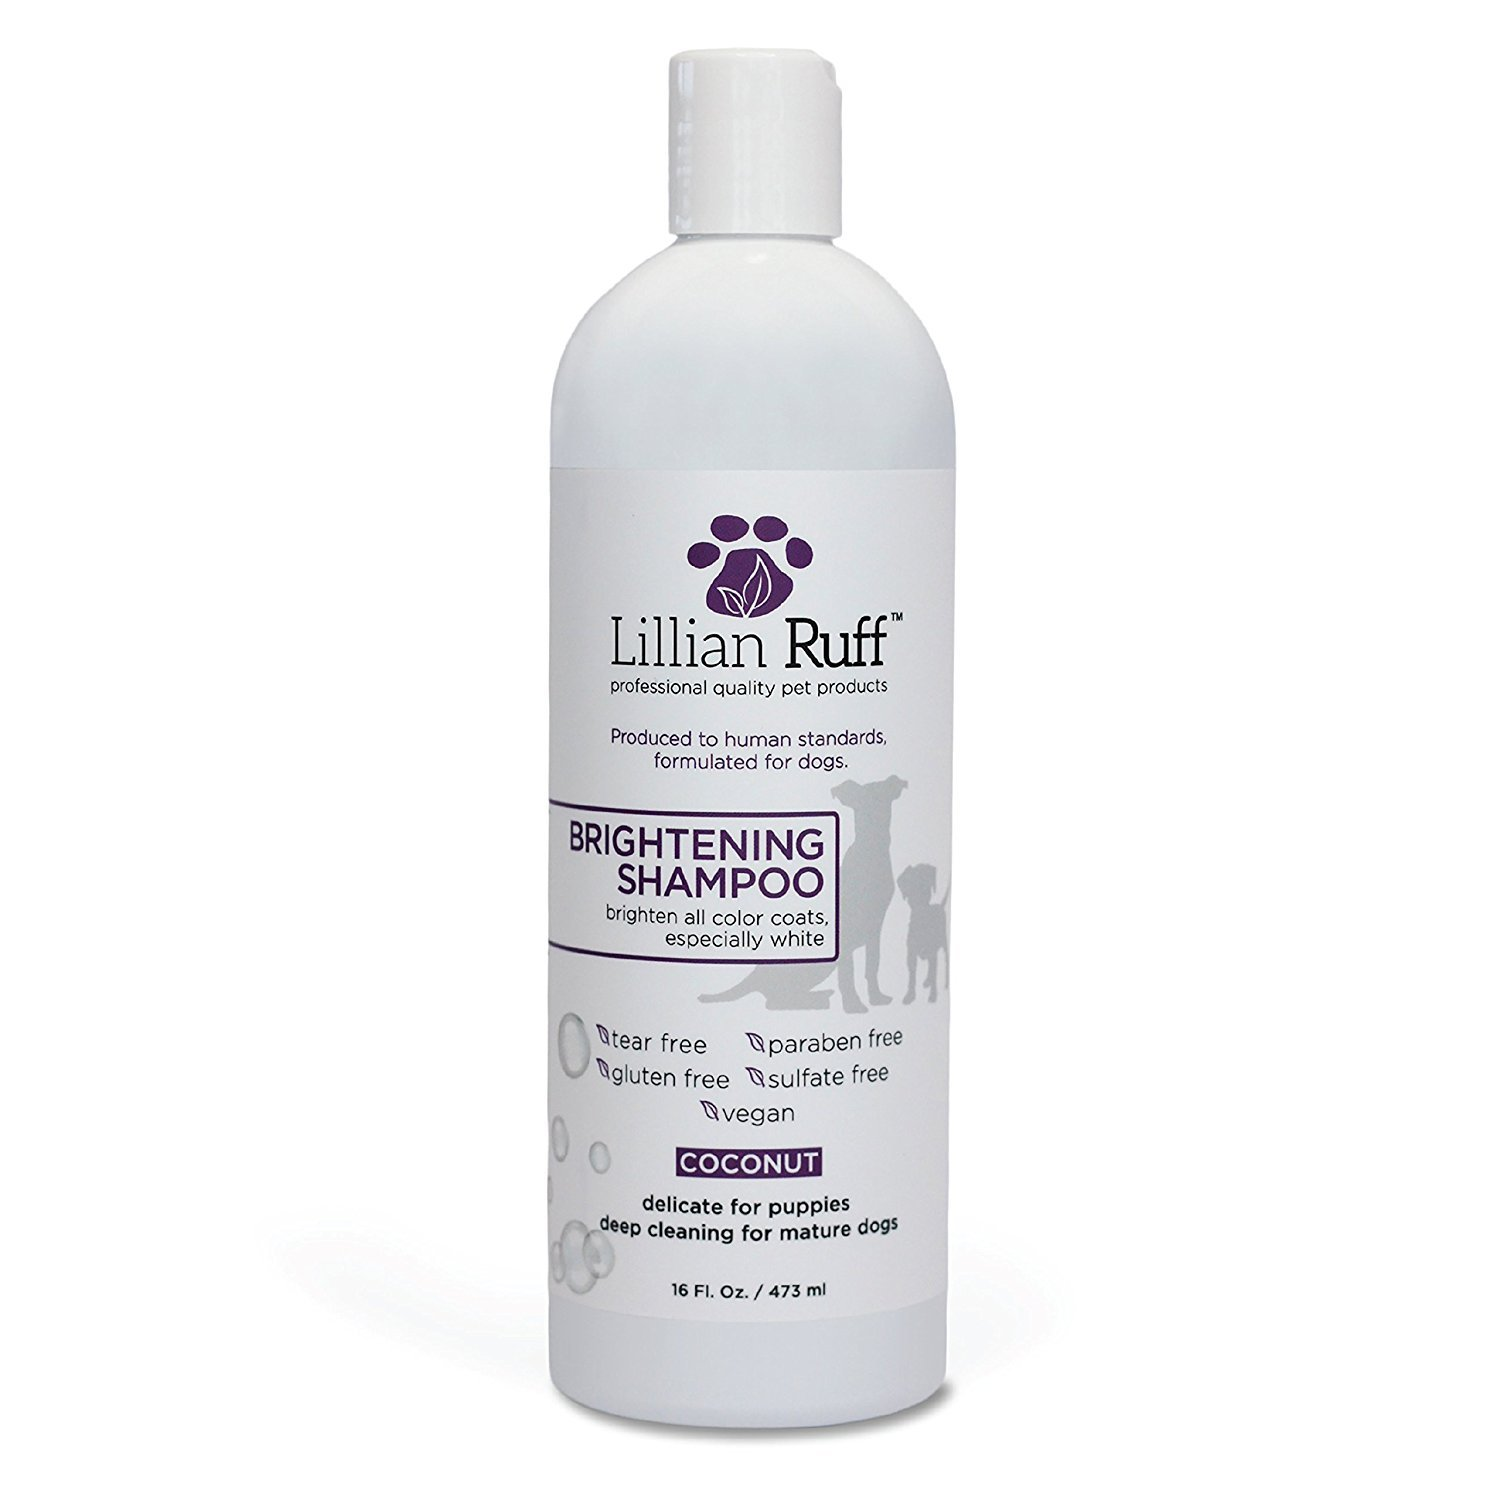 16 oz Radiant Coconut Brightening Shampoo for Pets by LILLIAN RUFF (16 oz.)